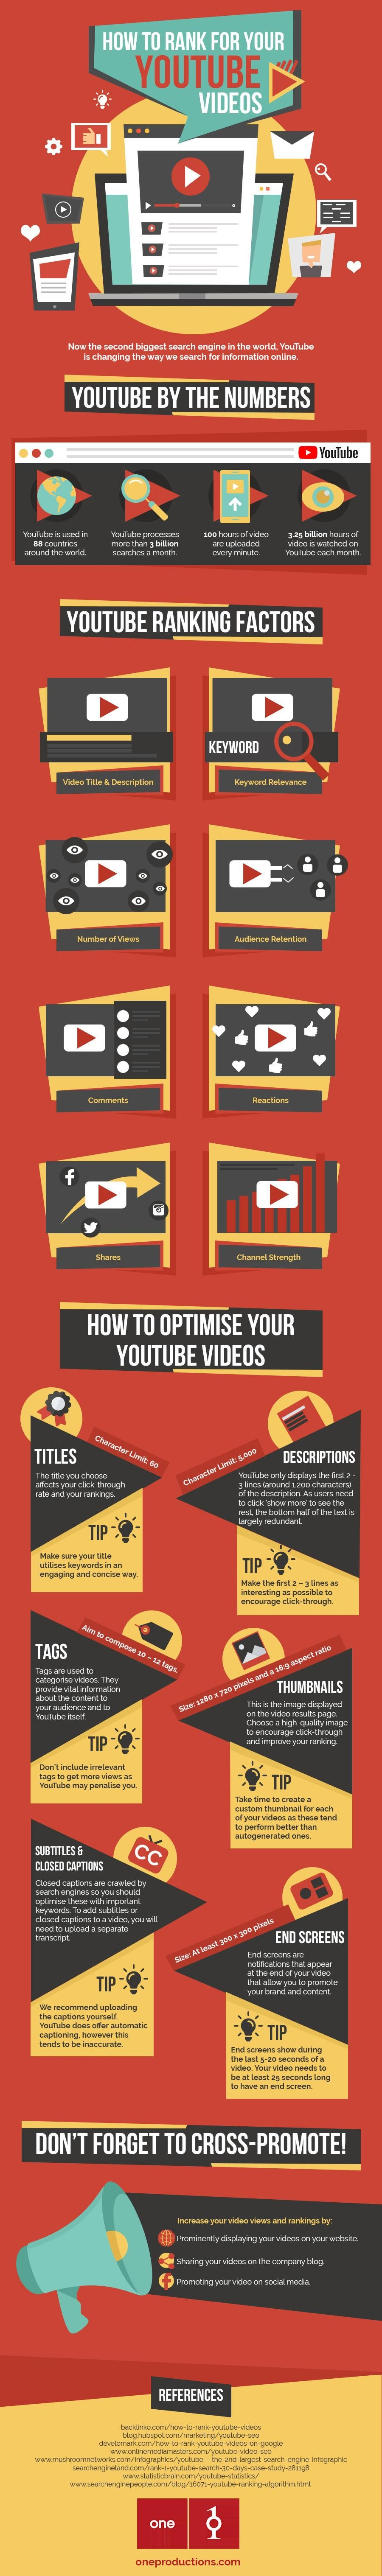 Infographic looks at YouTube SEO factors and usage insights